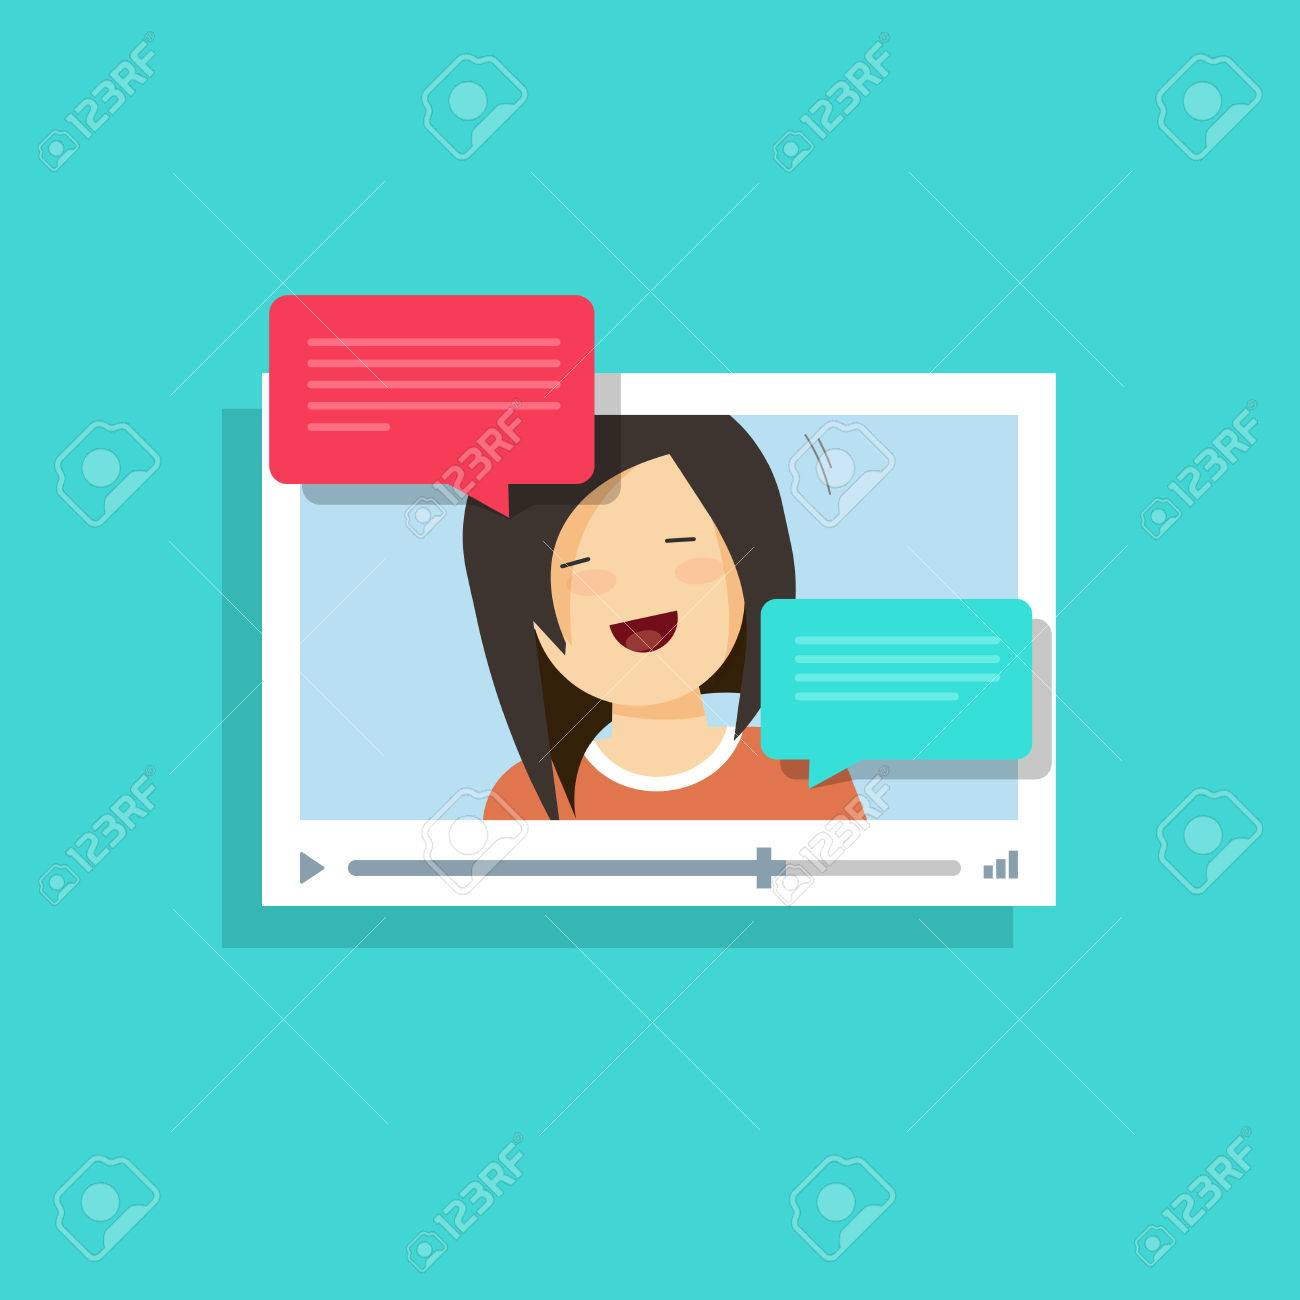 Video Chatting Online Vector Illustration Flat Cartoon